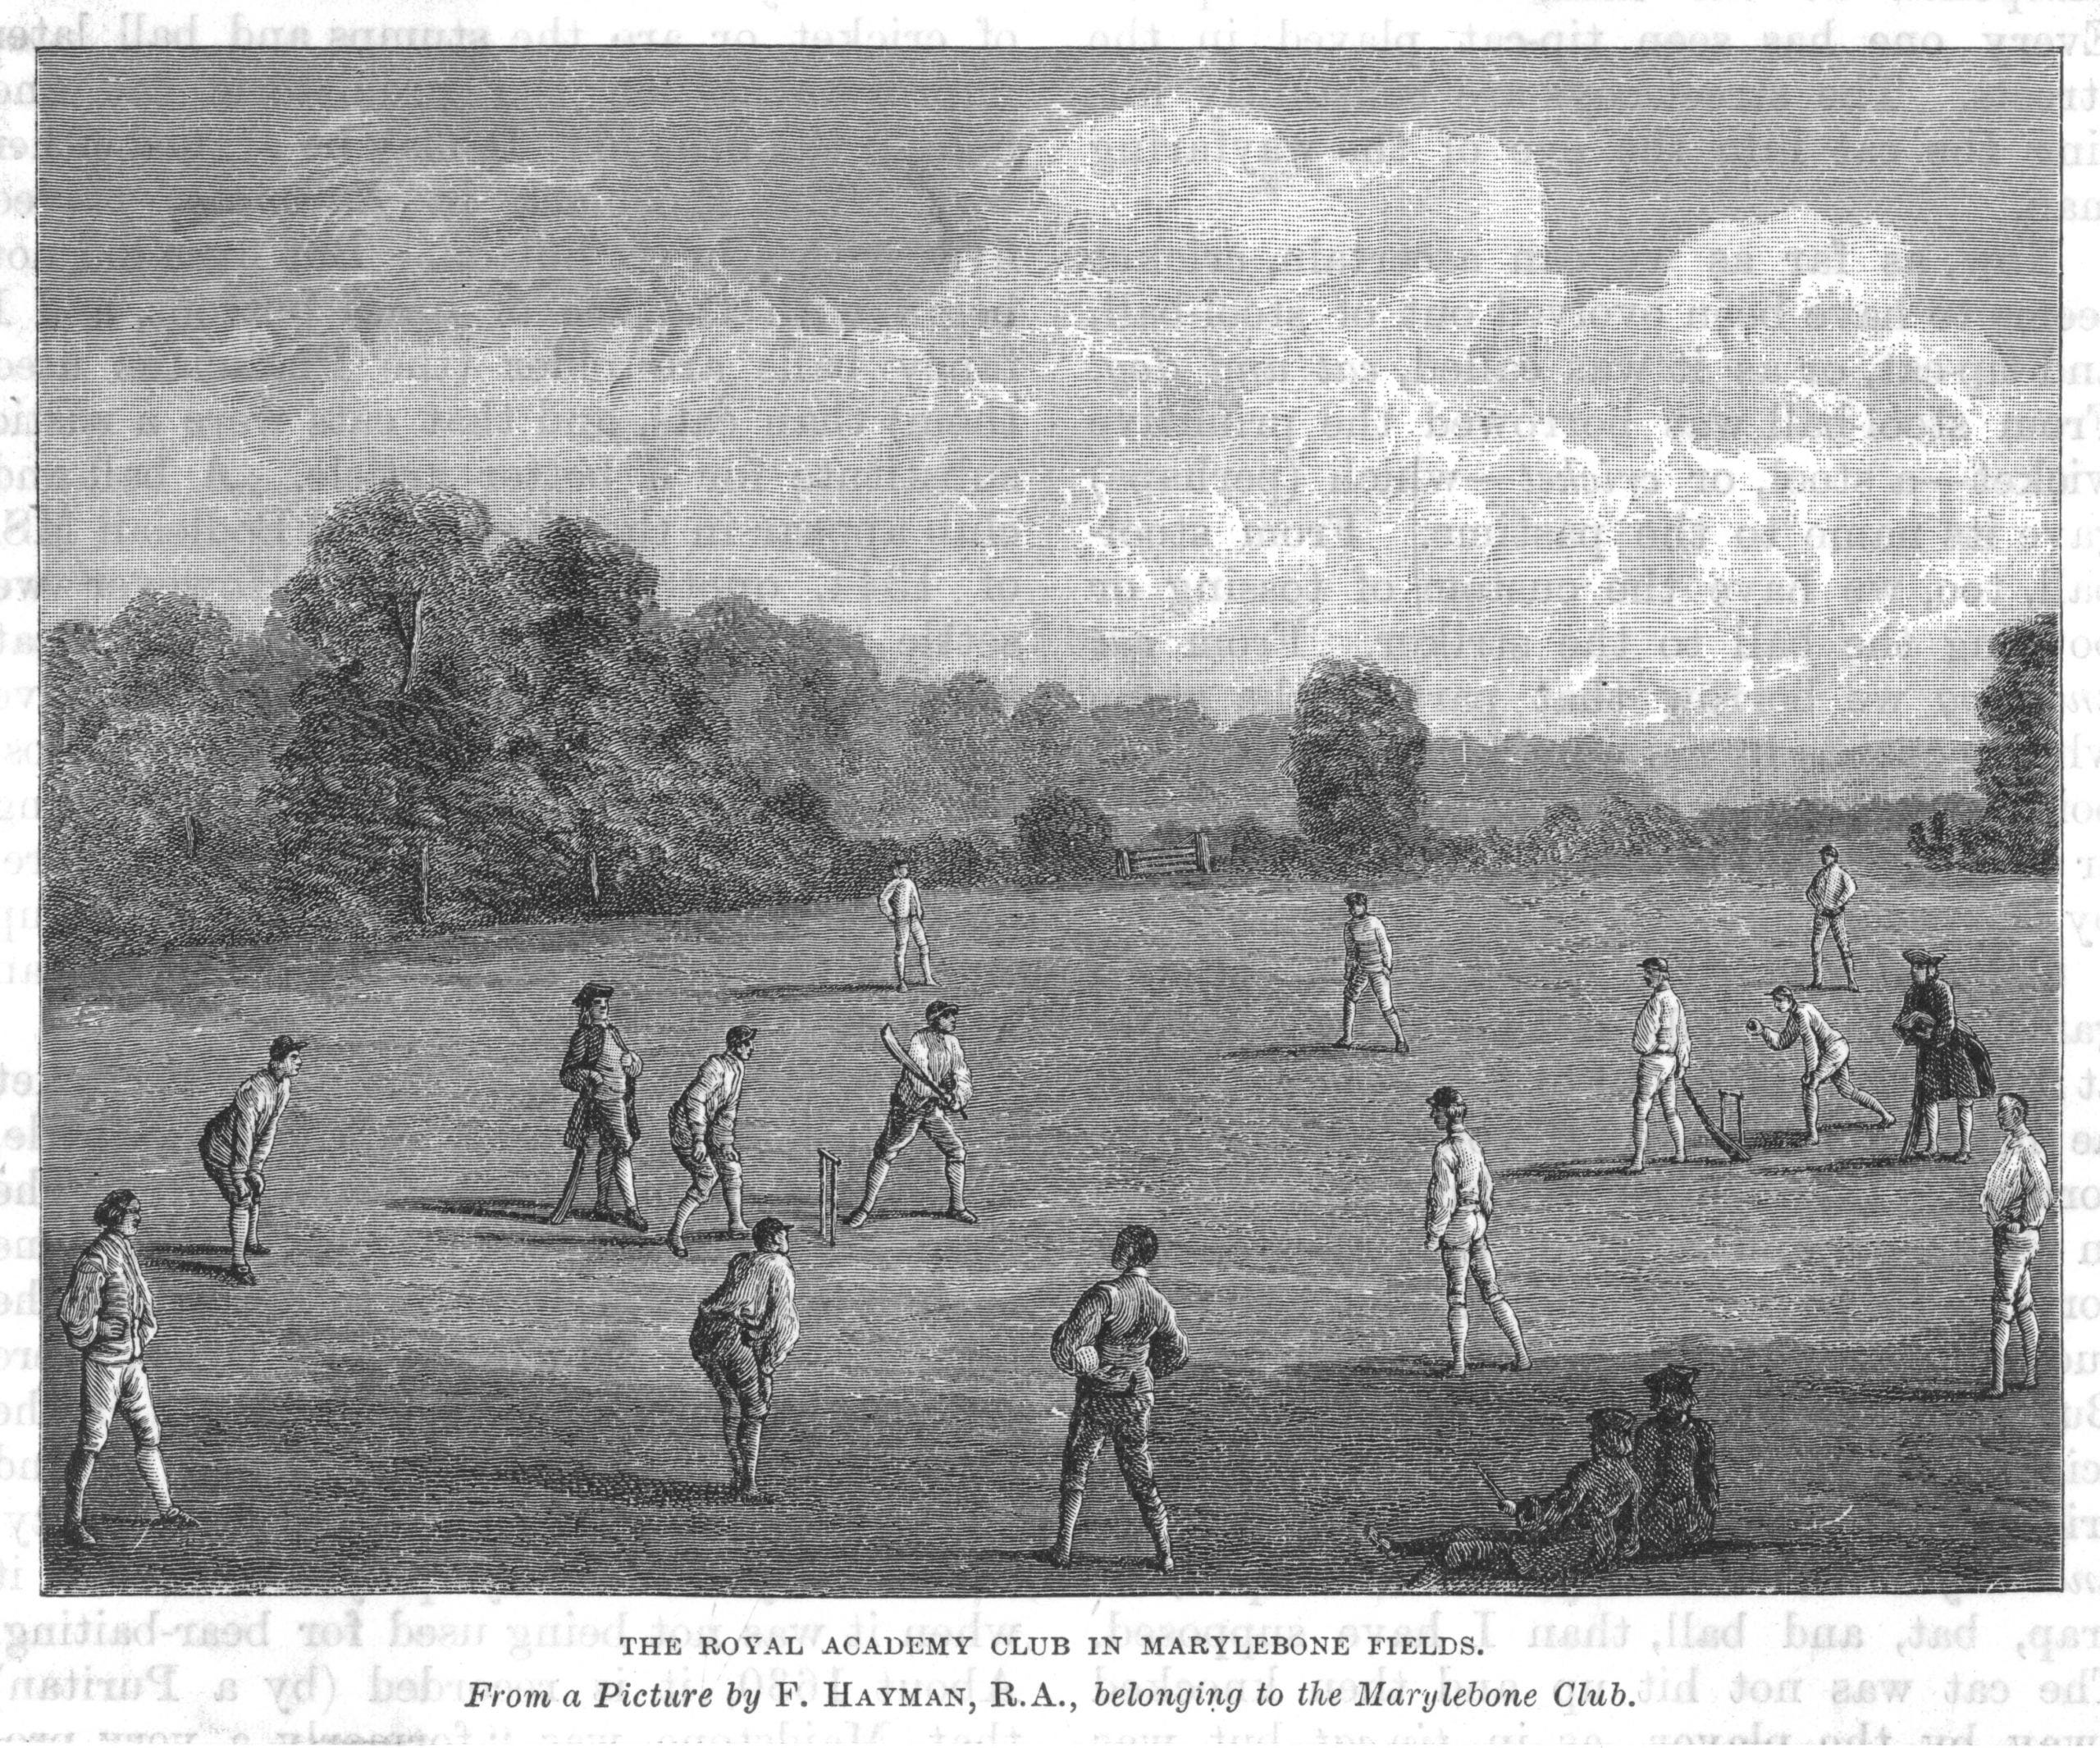 Cricket in the 18th century